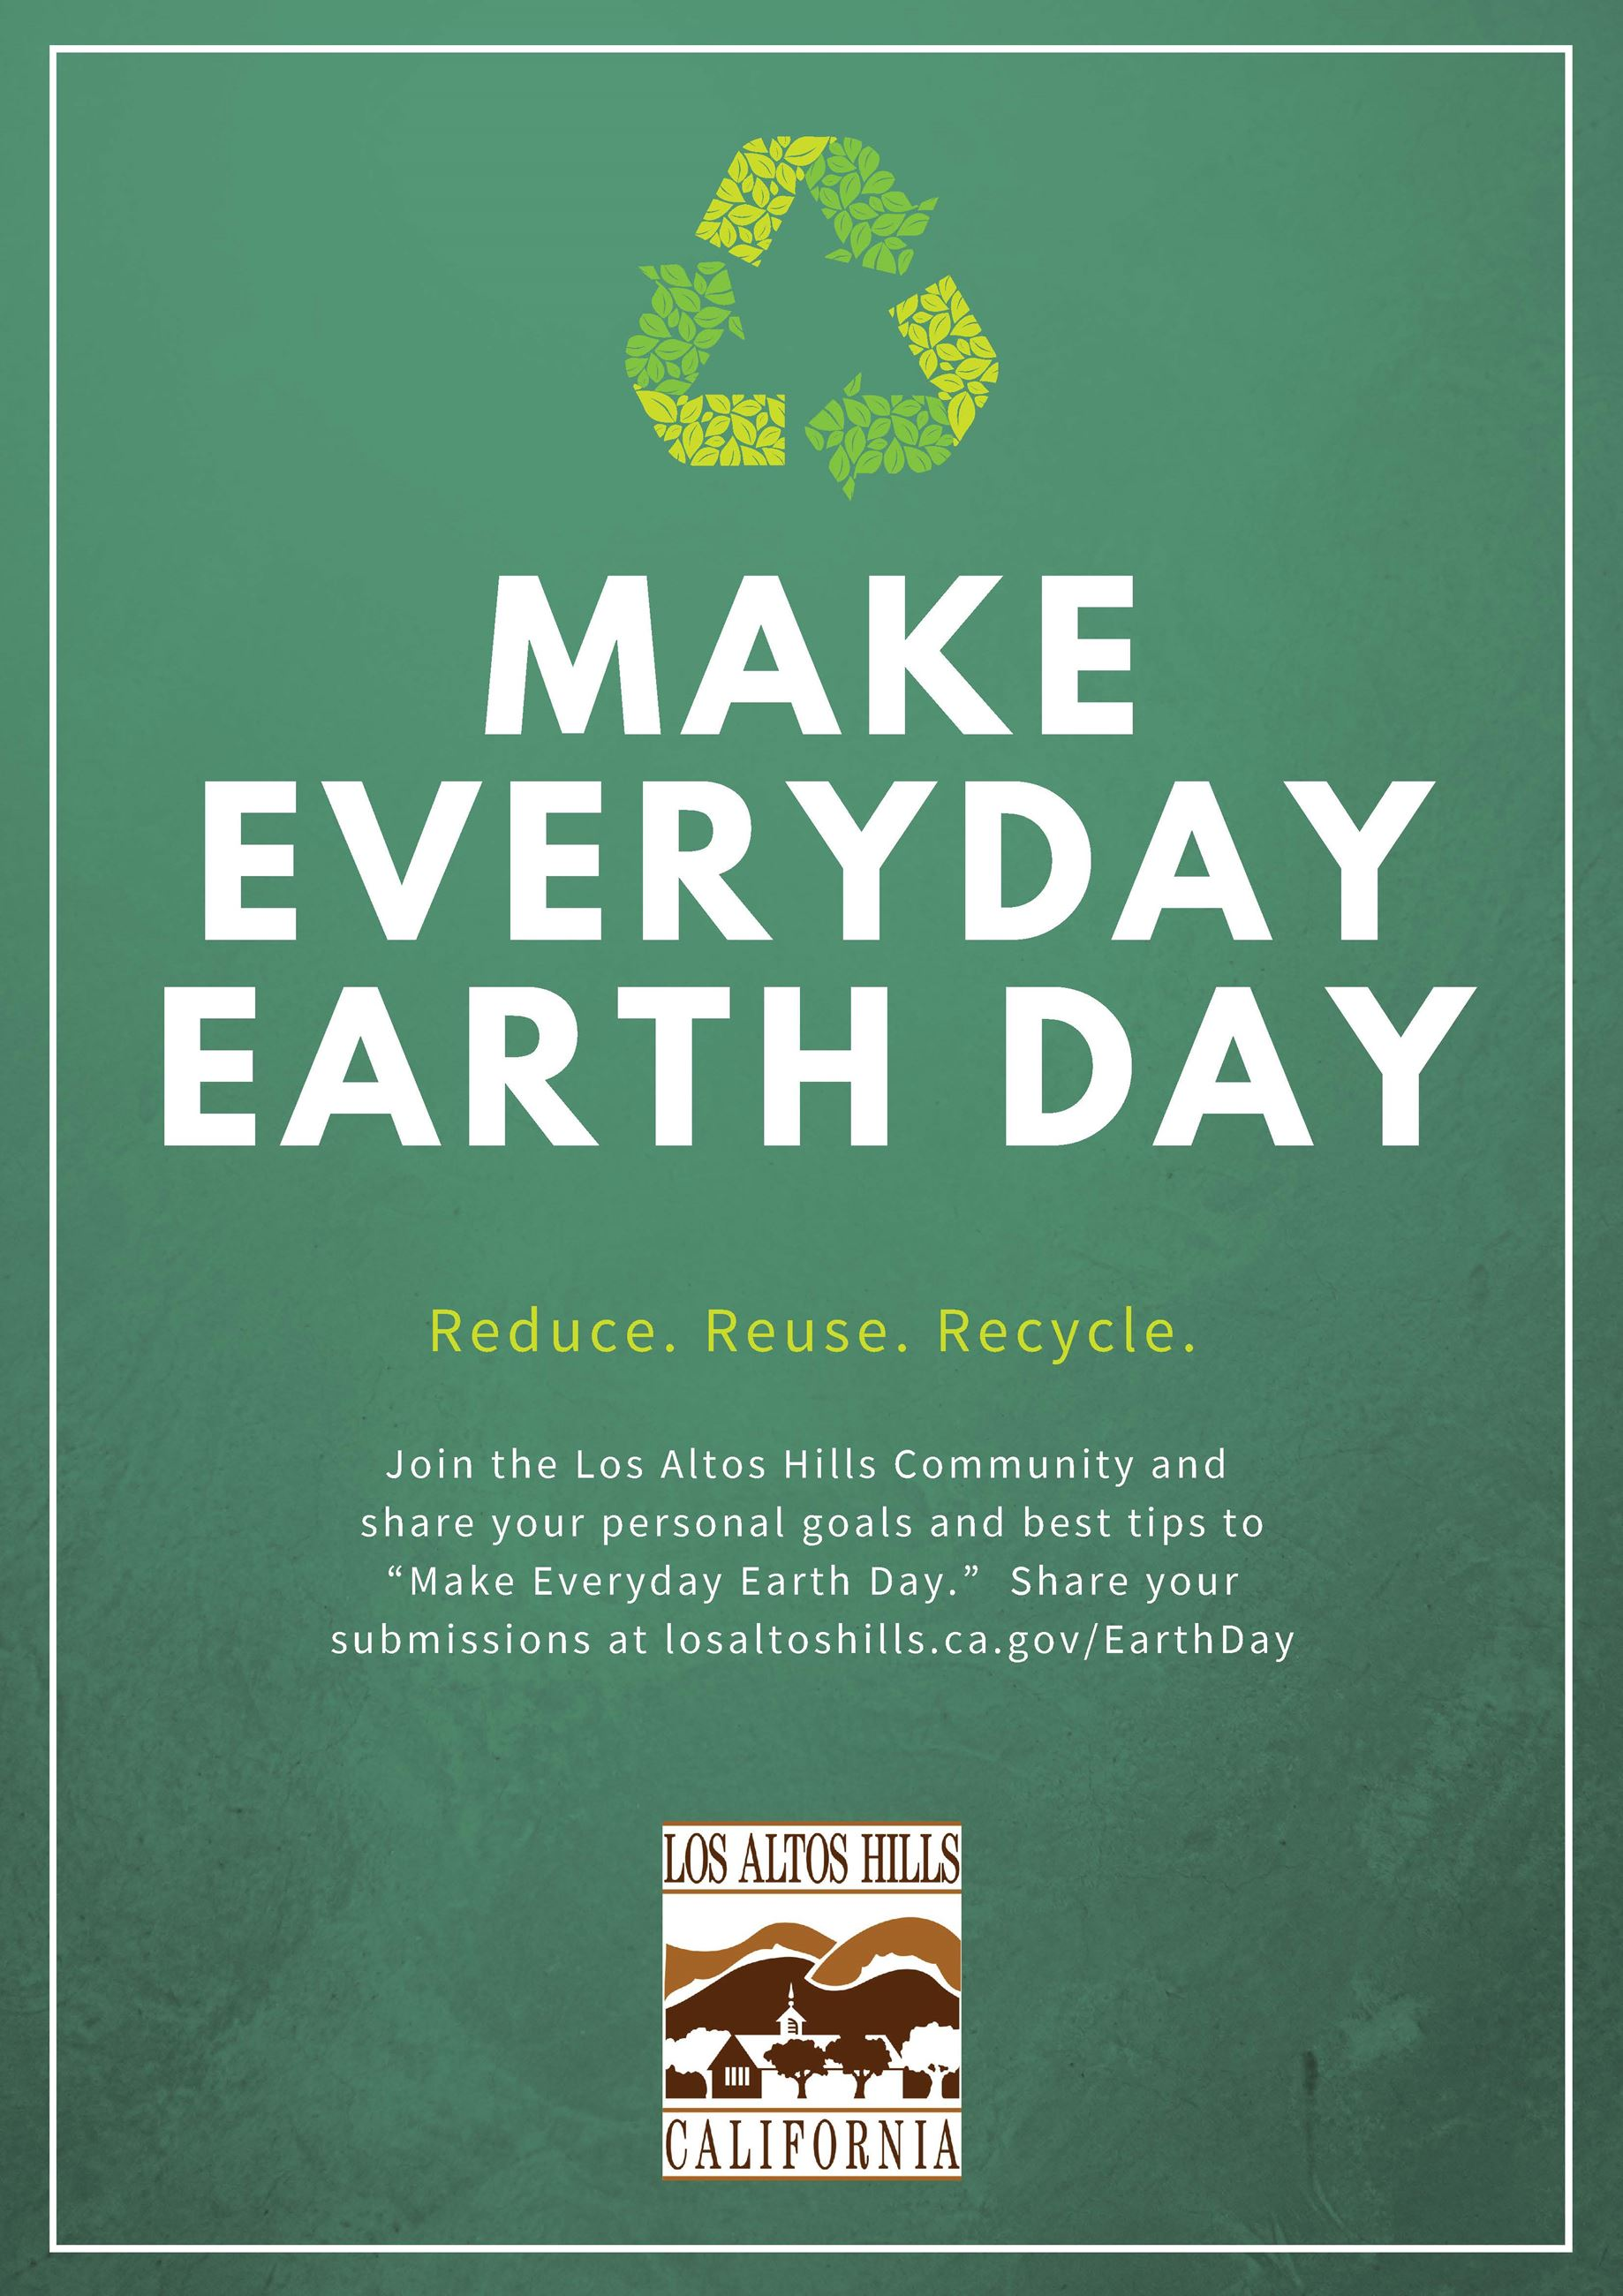 Make Everyday Earth Day 2021 Flyer